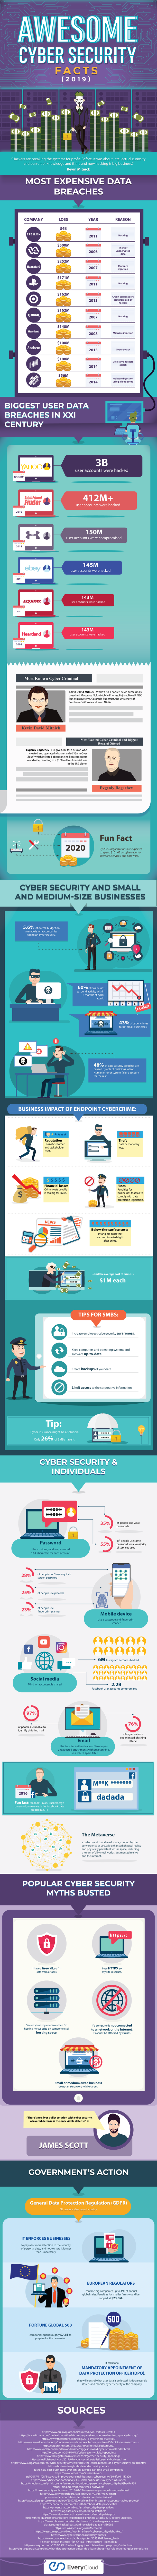 cybercrime facts 2019